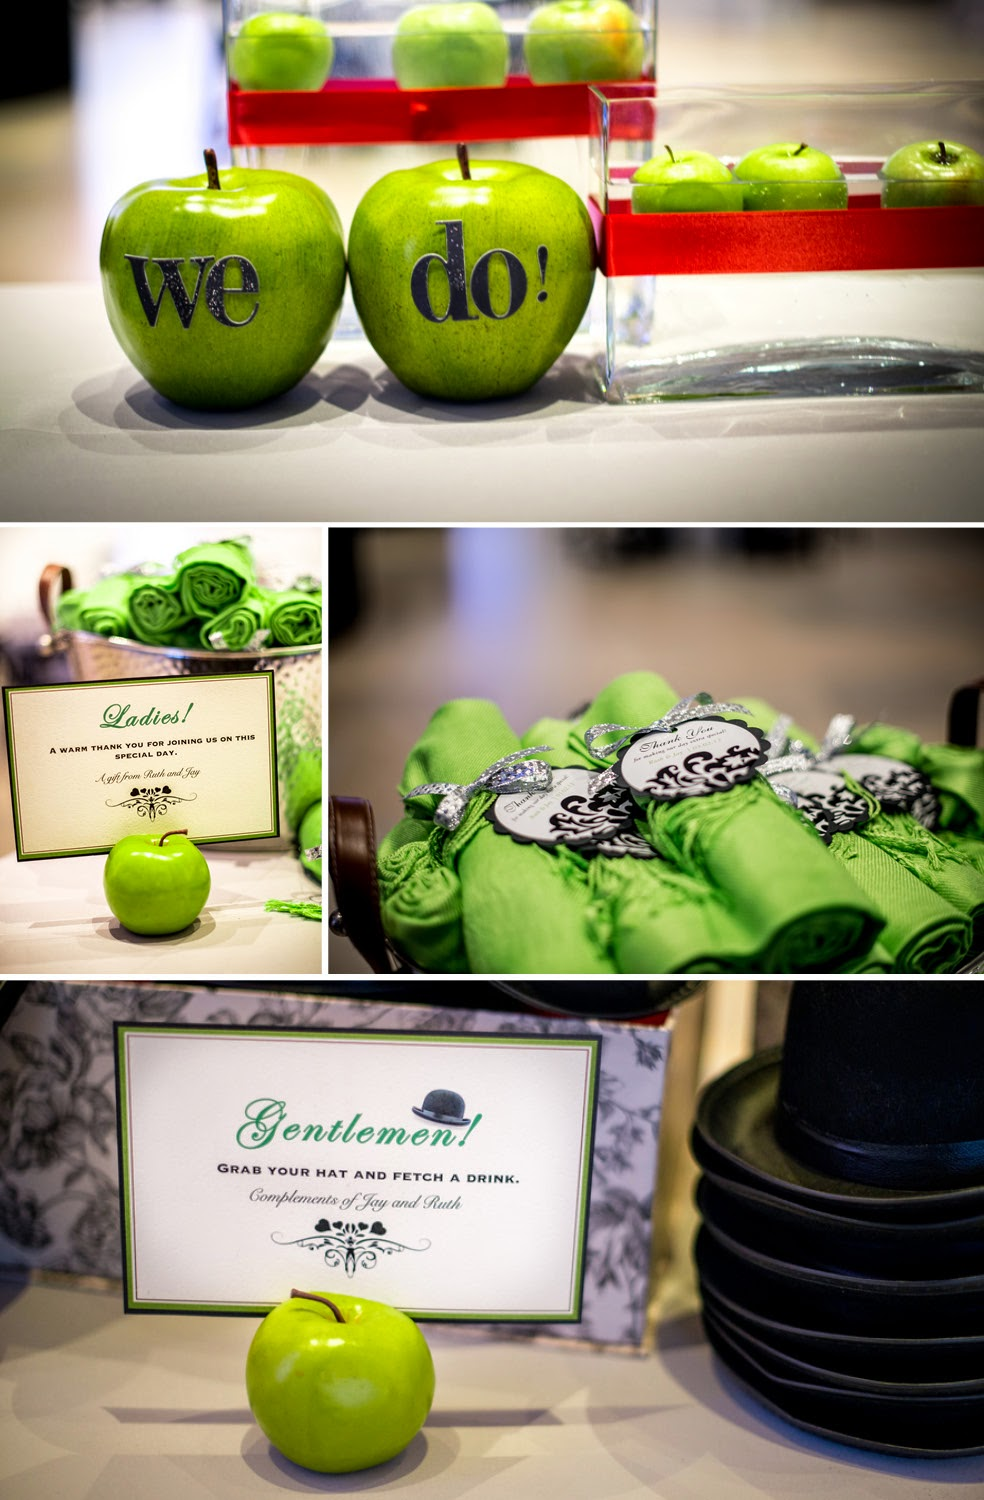 Using green apples in your wedding decor wedding stuff ideas junglespirit Gallery